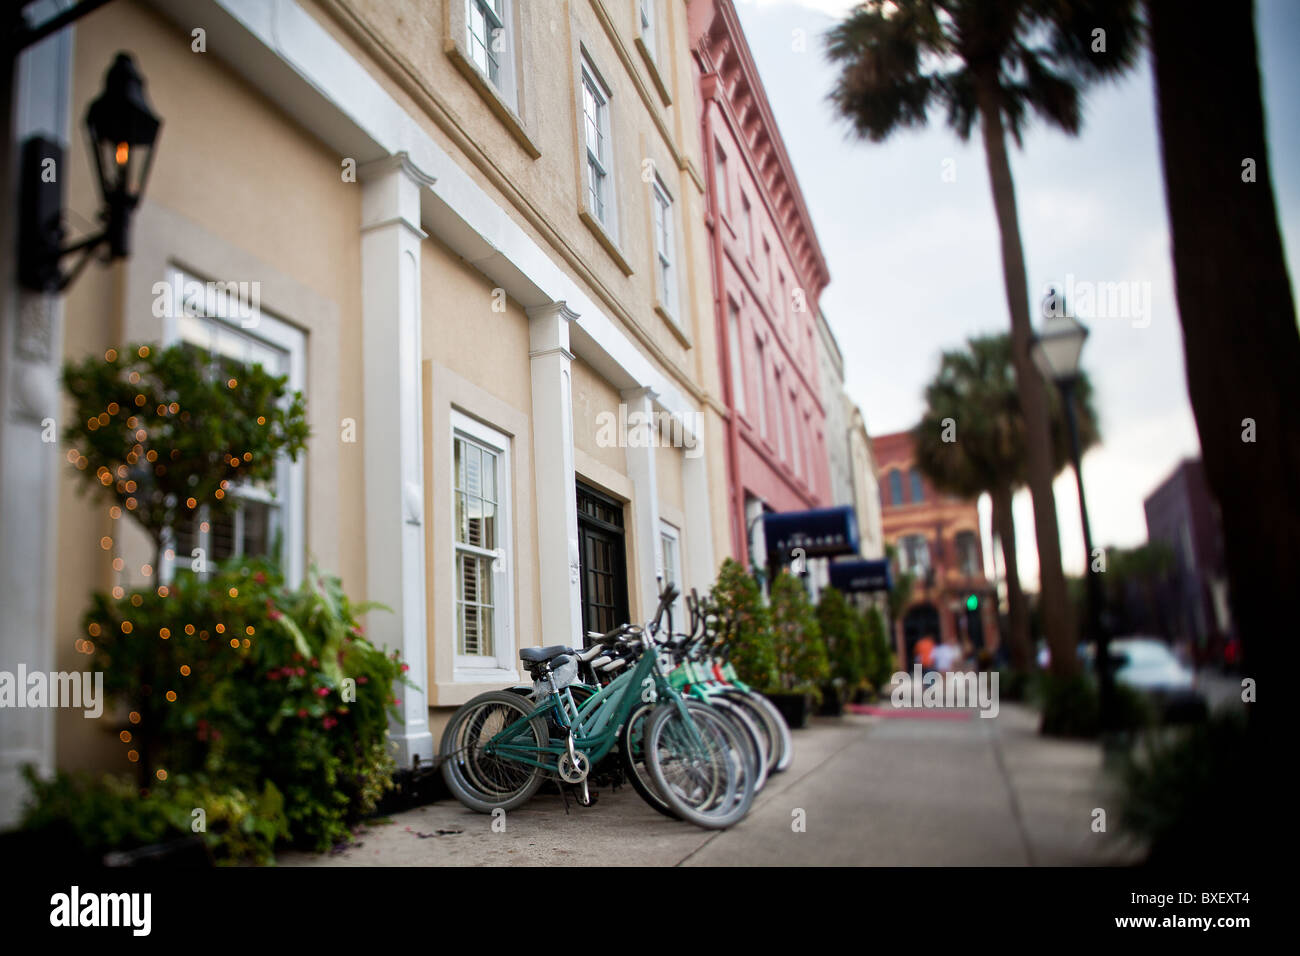 View of the Vendue Hotel and Vendue Range in Charleston, SC. - Stock Image